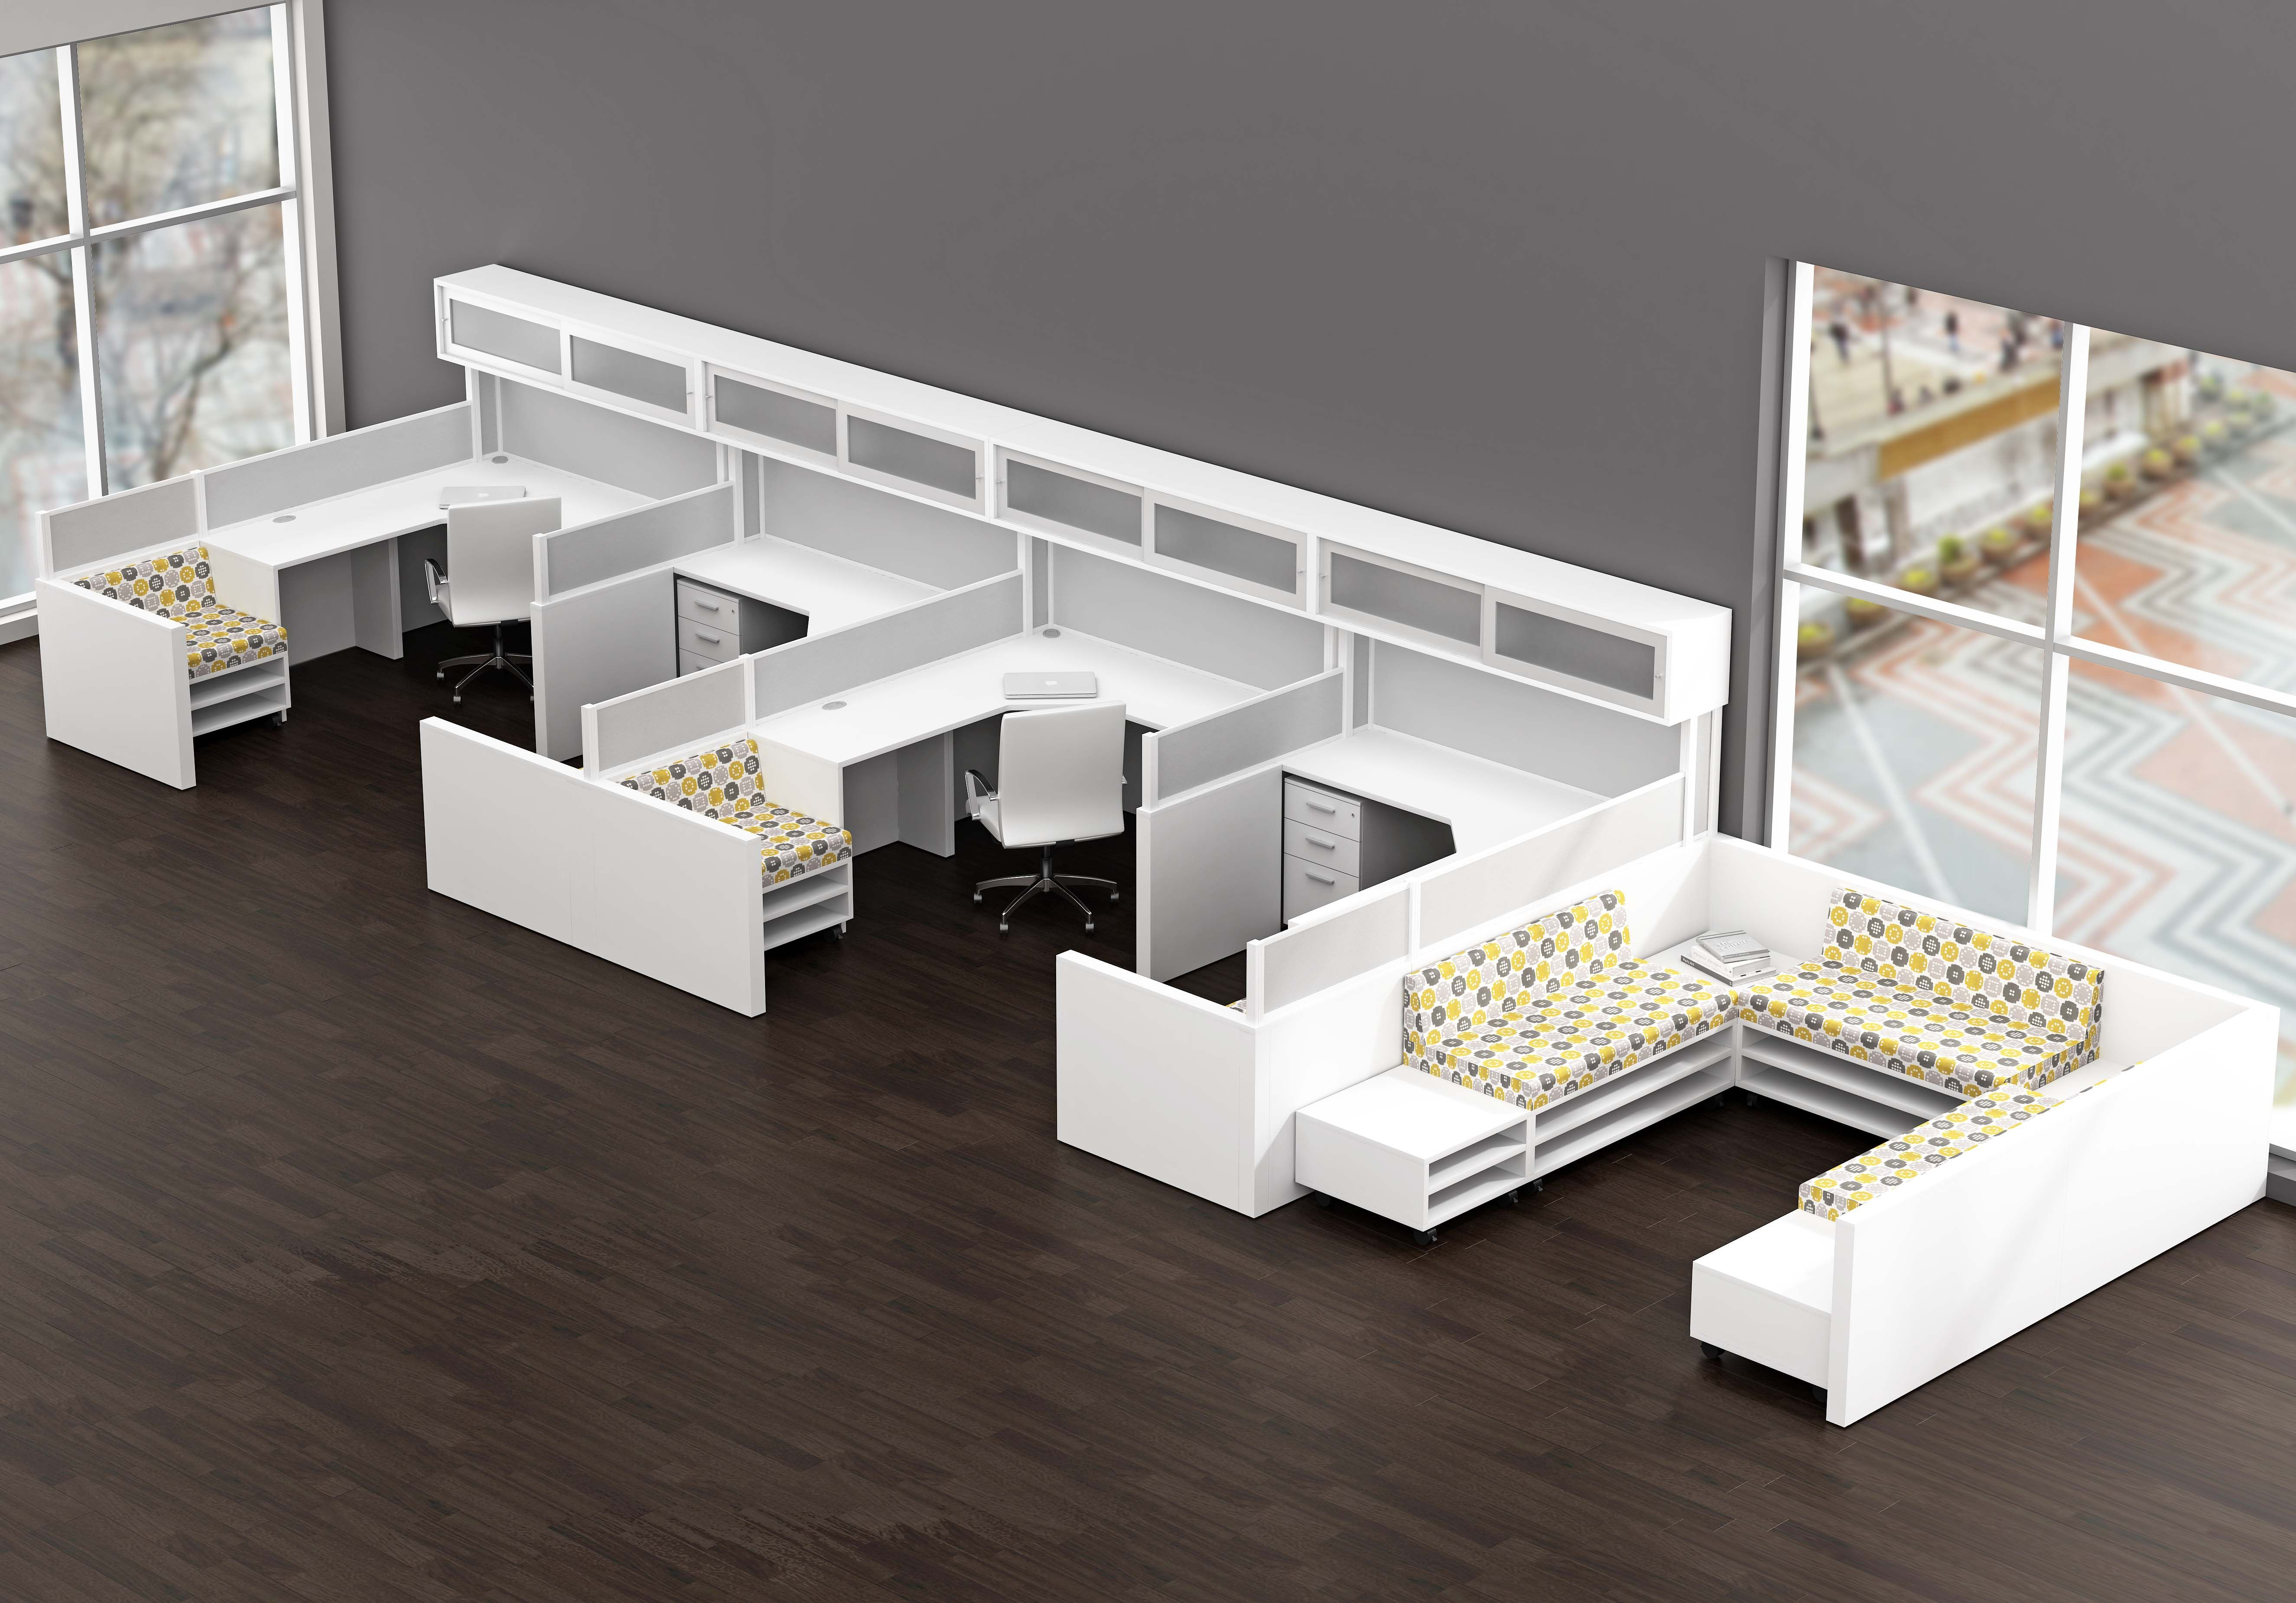 Free Standing Open Plan Workstations That Do Not Use Panels But